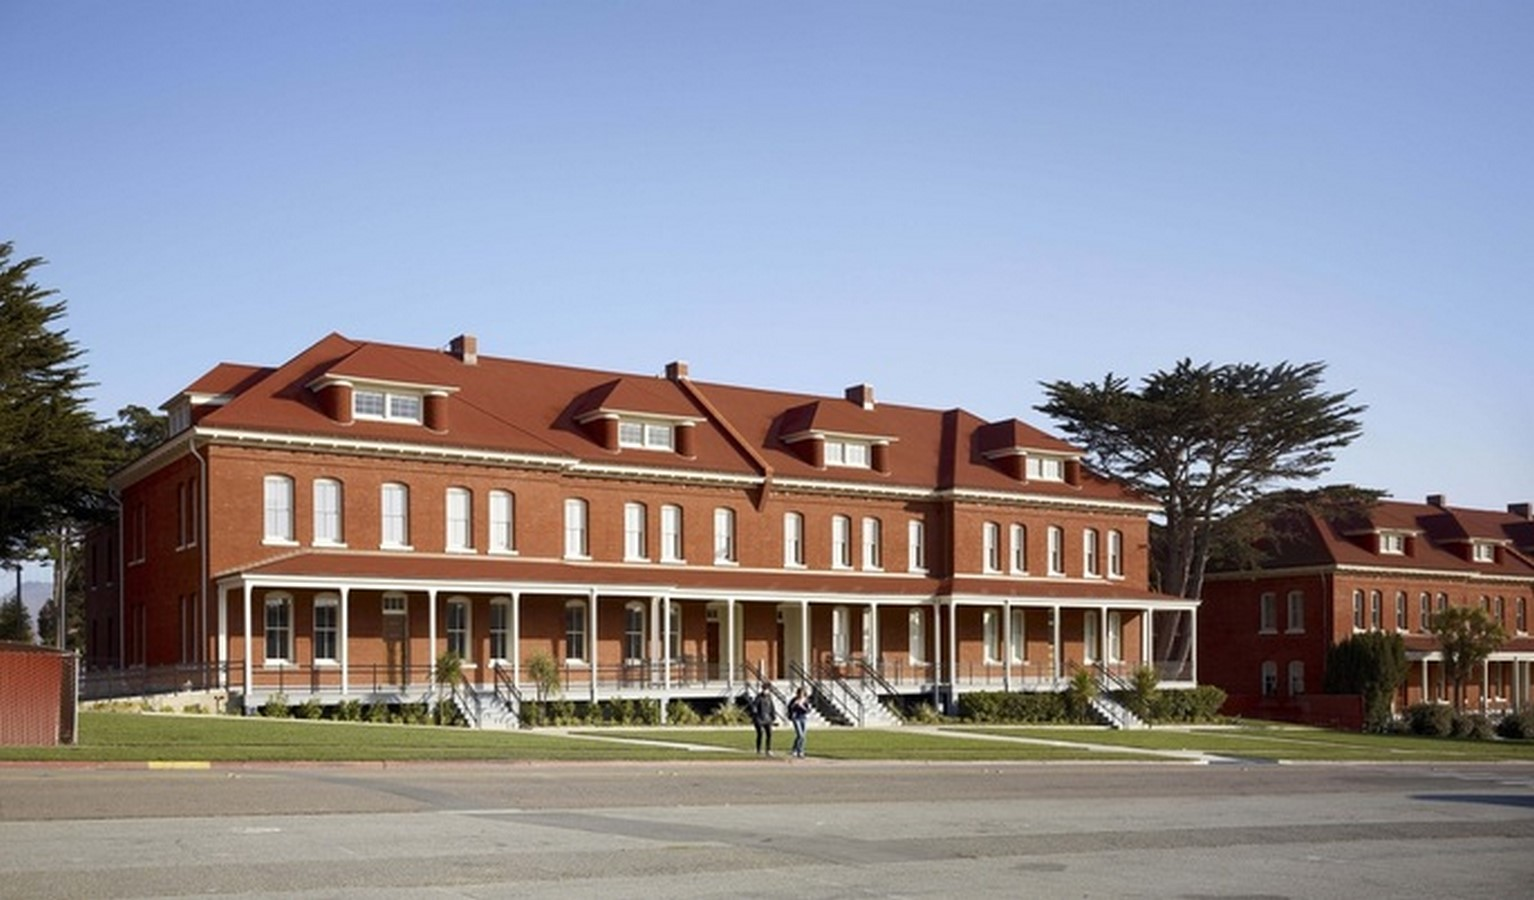 Walt Disney Family Museum by Rockwell Group- Telling a story through architecture - Sheet2